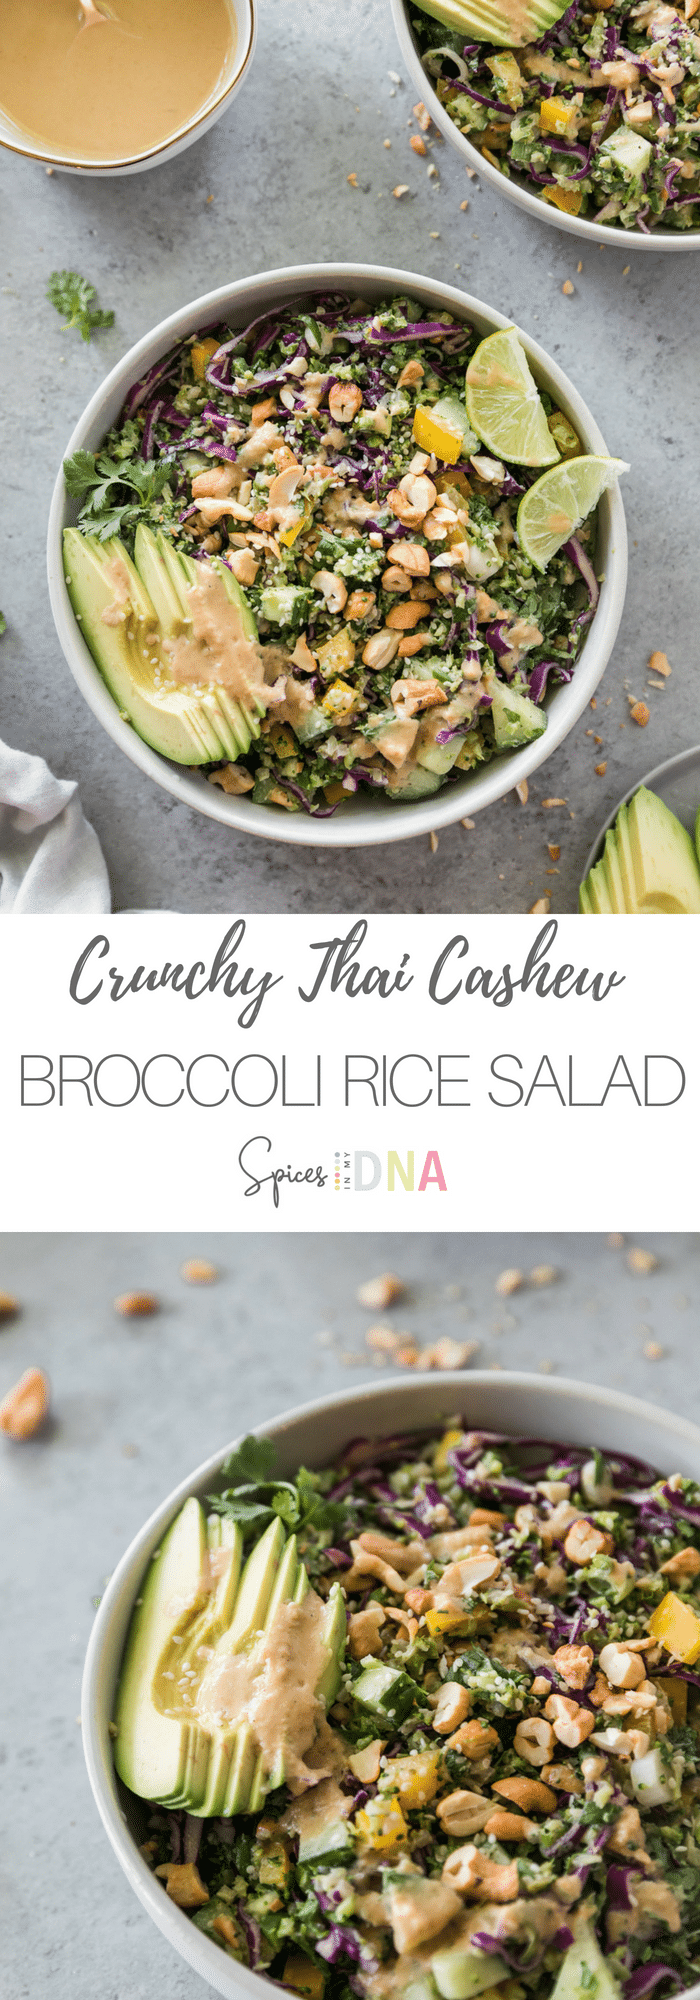 This Crunchy Thai Cashew Broccoli Rice Salad is filled with cucumbers, bell pepper, shredded red cabbage, scallions, broccoli rice, roasted cashews, and a cashew ginger lime dressing. It's super crunchy, filled with tons of nutrients and healthy fats, and it's great for easy lunches! #broccolirice #thai #salad